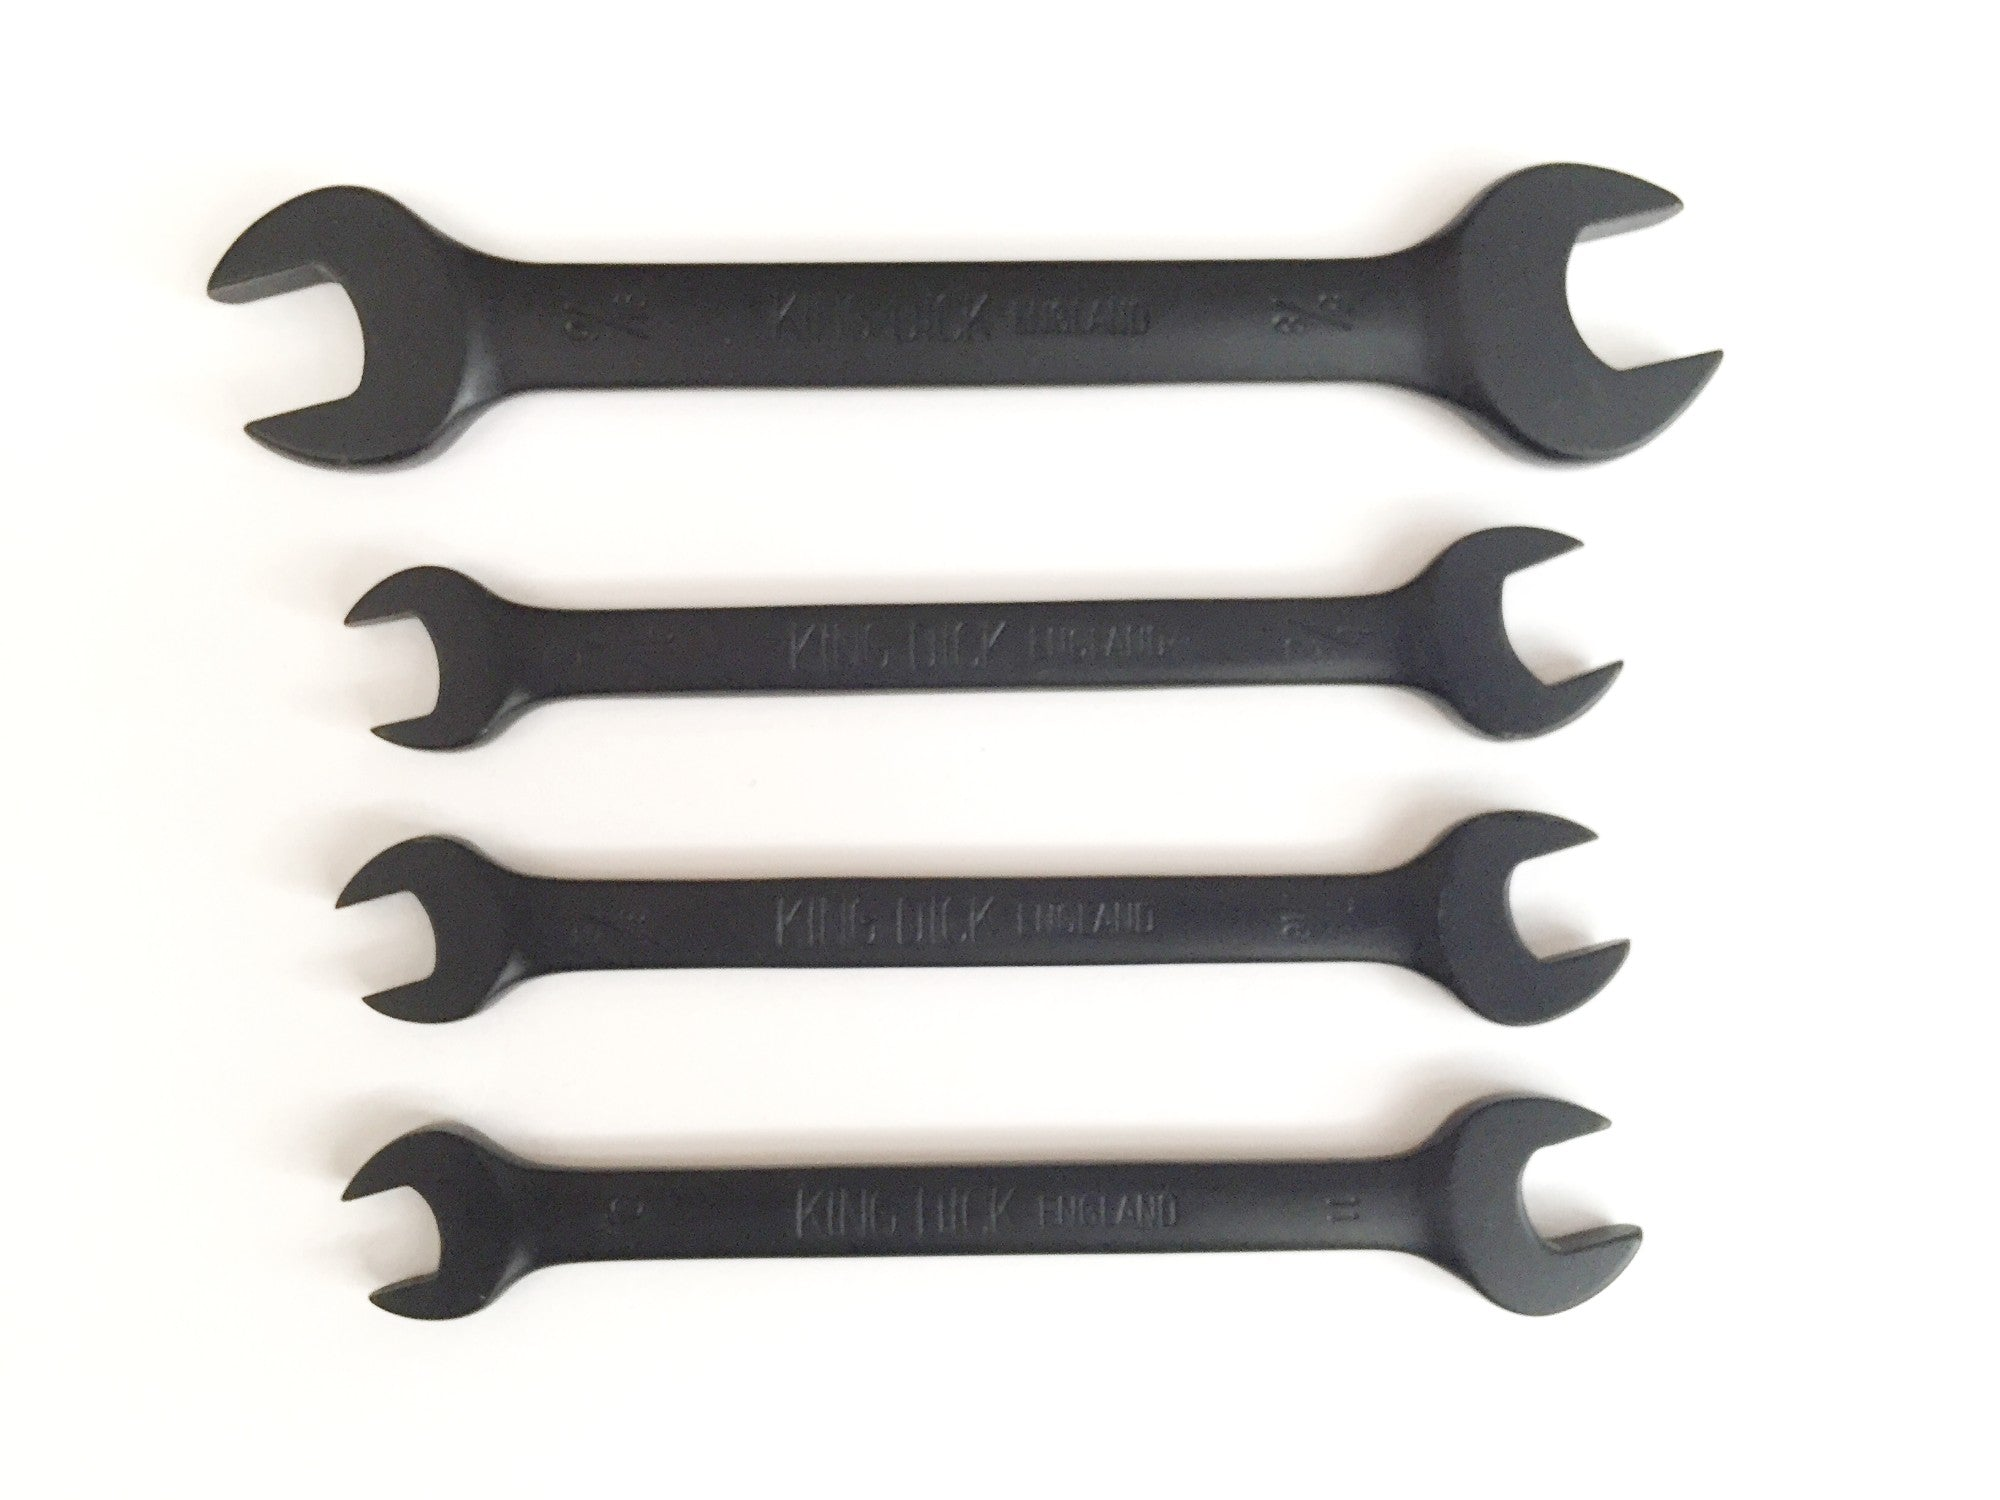 King Dick Tools Heritage Open End Spanner